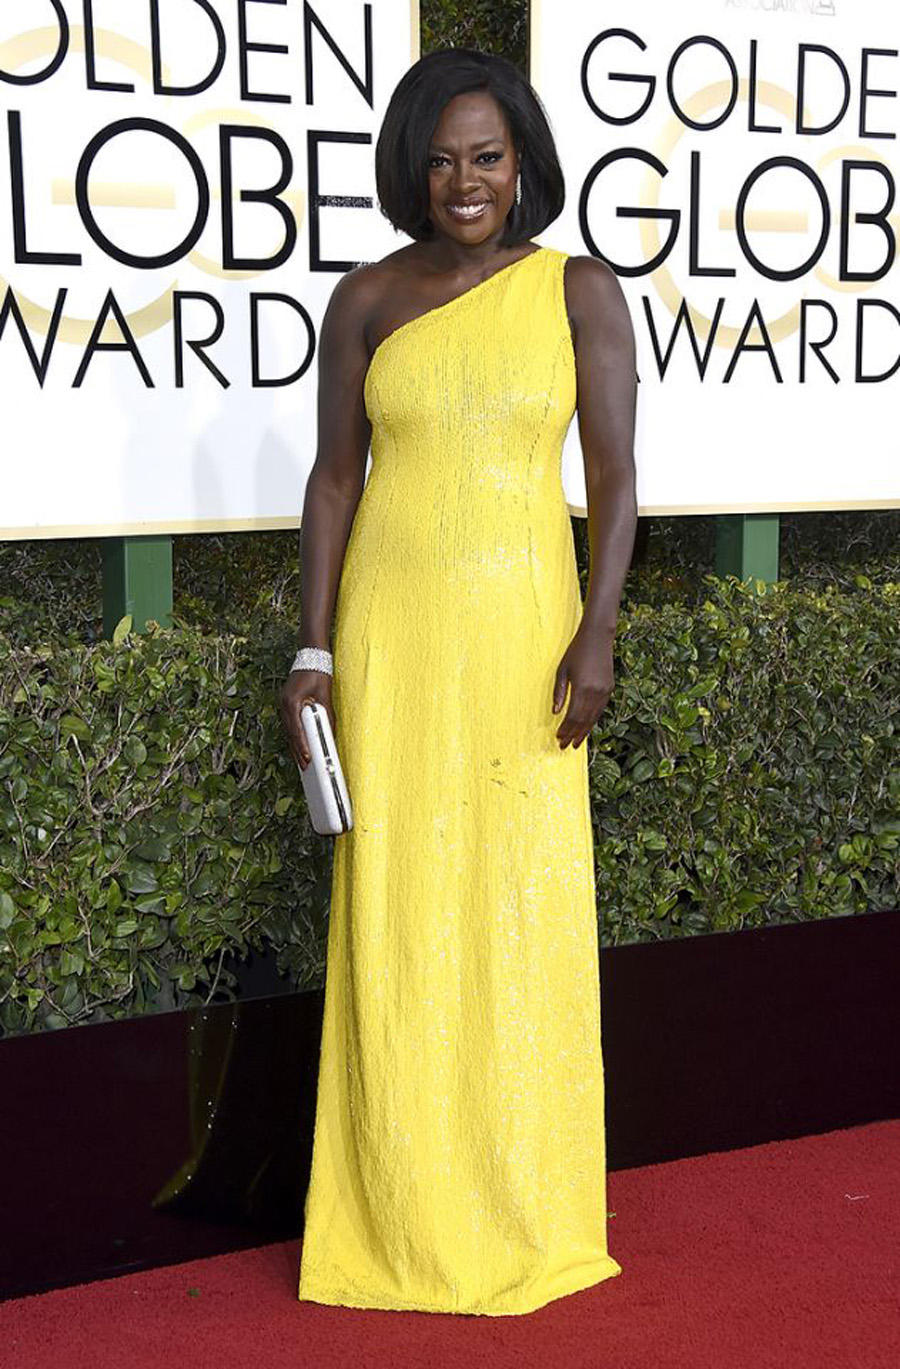 2017 Golden Globes Looks - Viola Davis